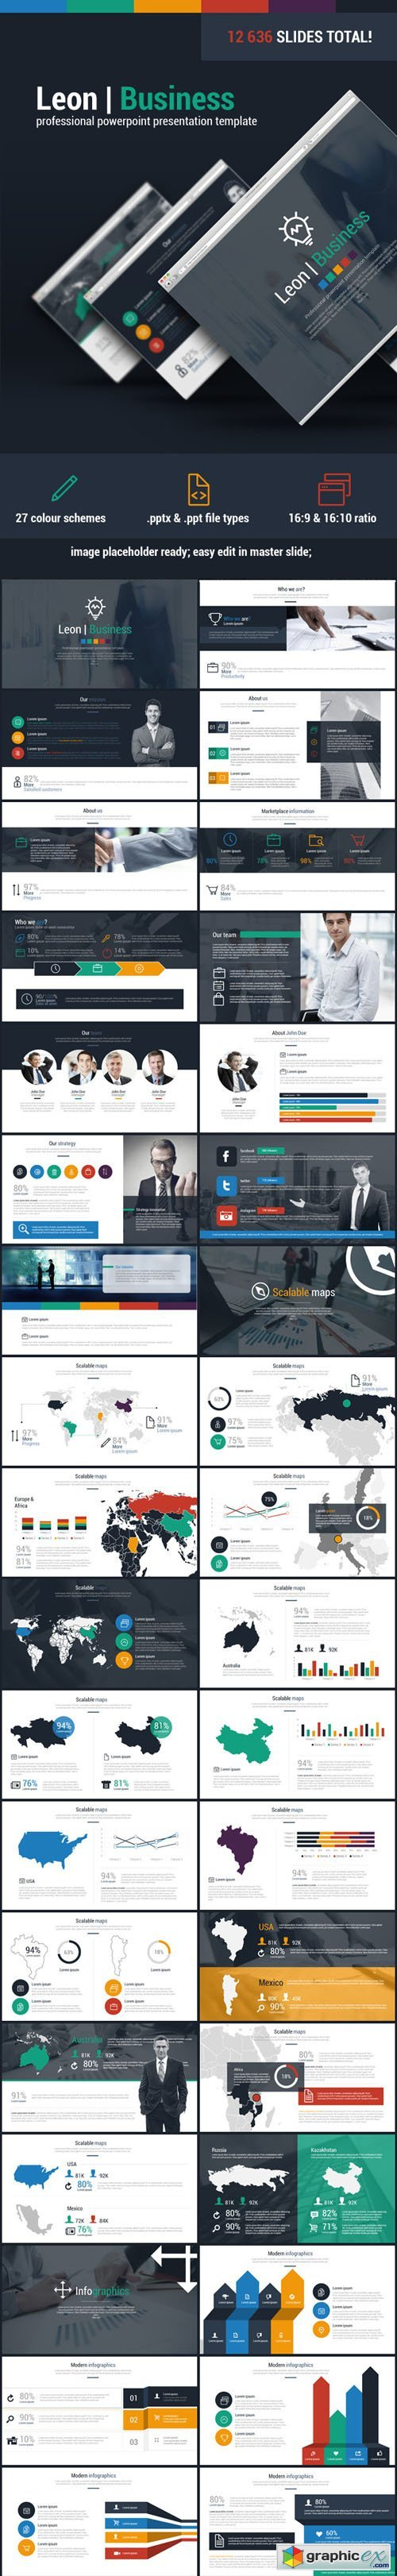 Leon Business Powerpoint Presentation Template